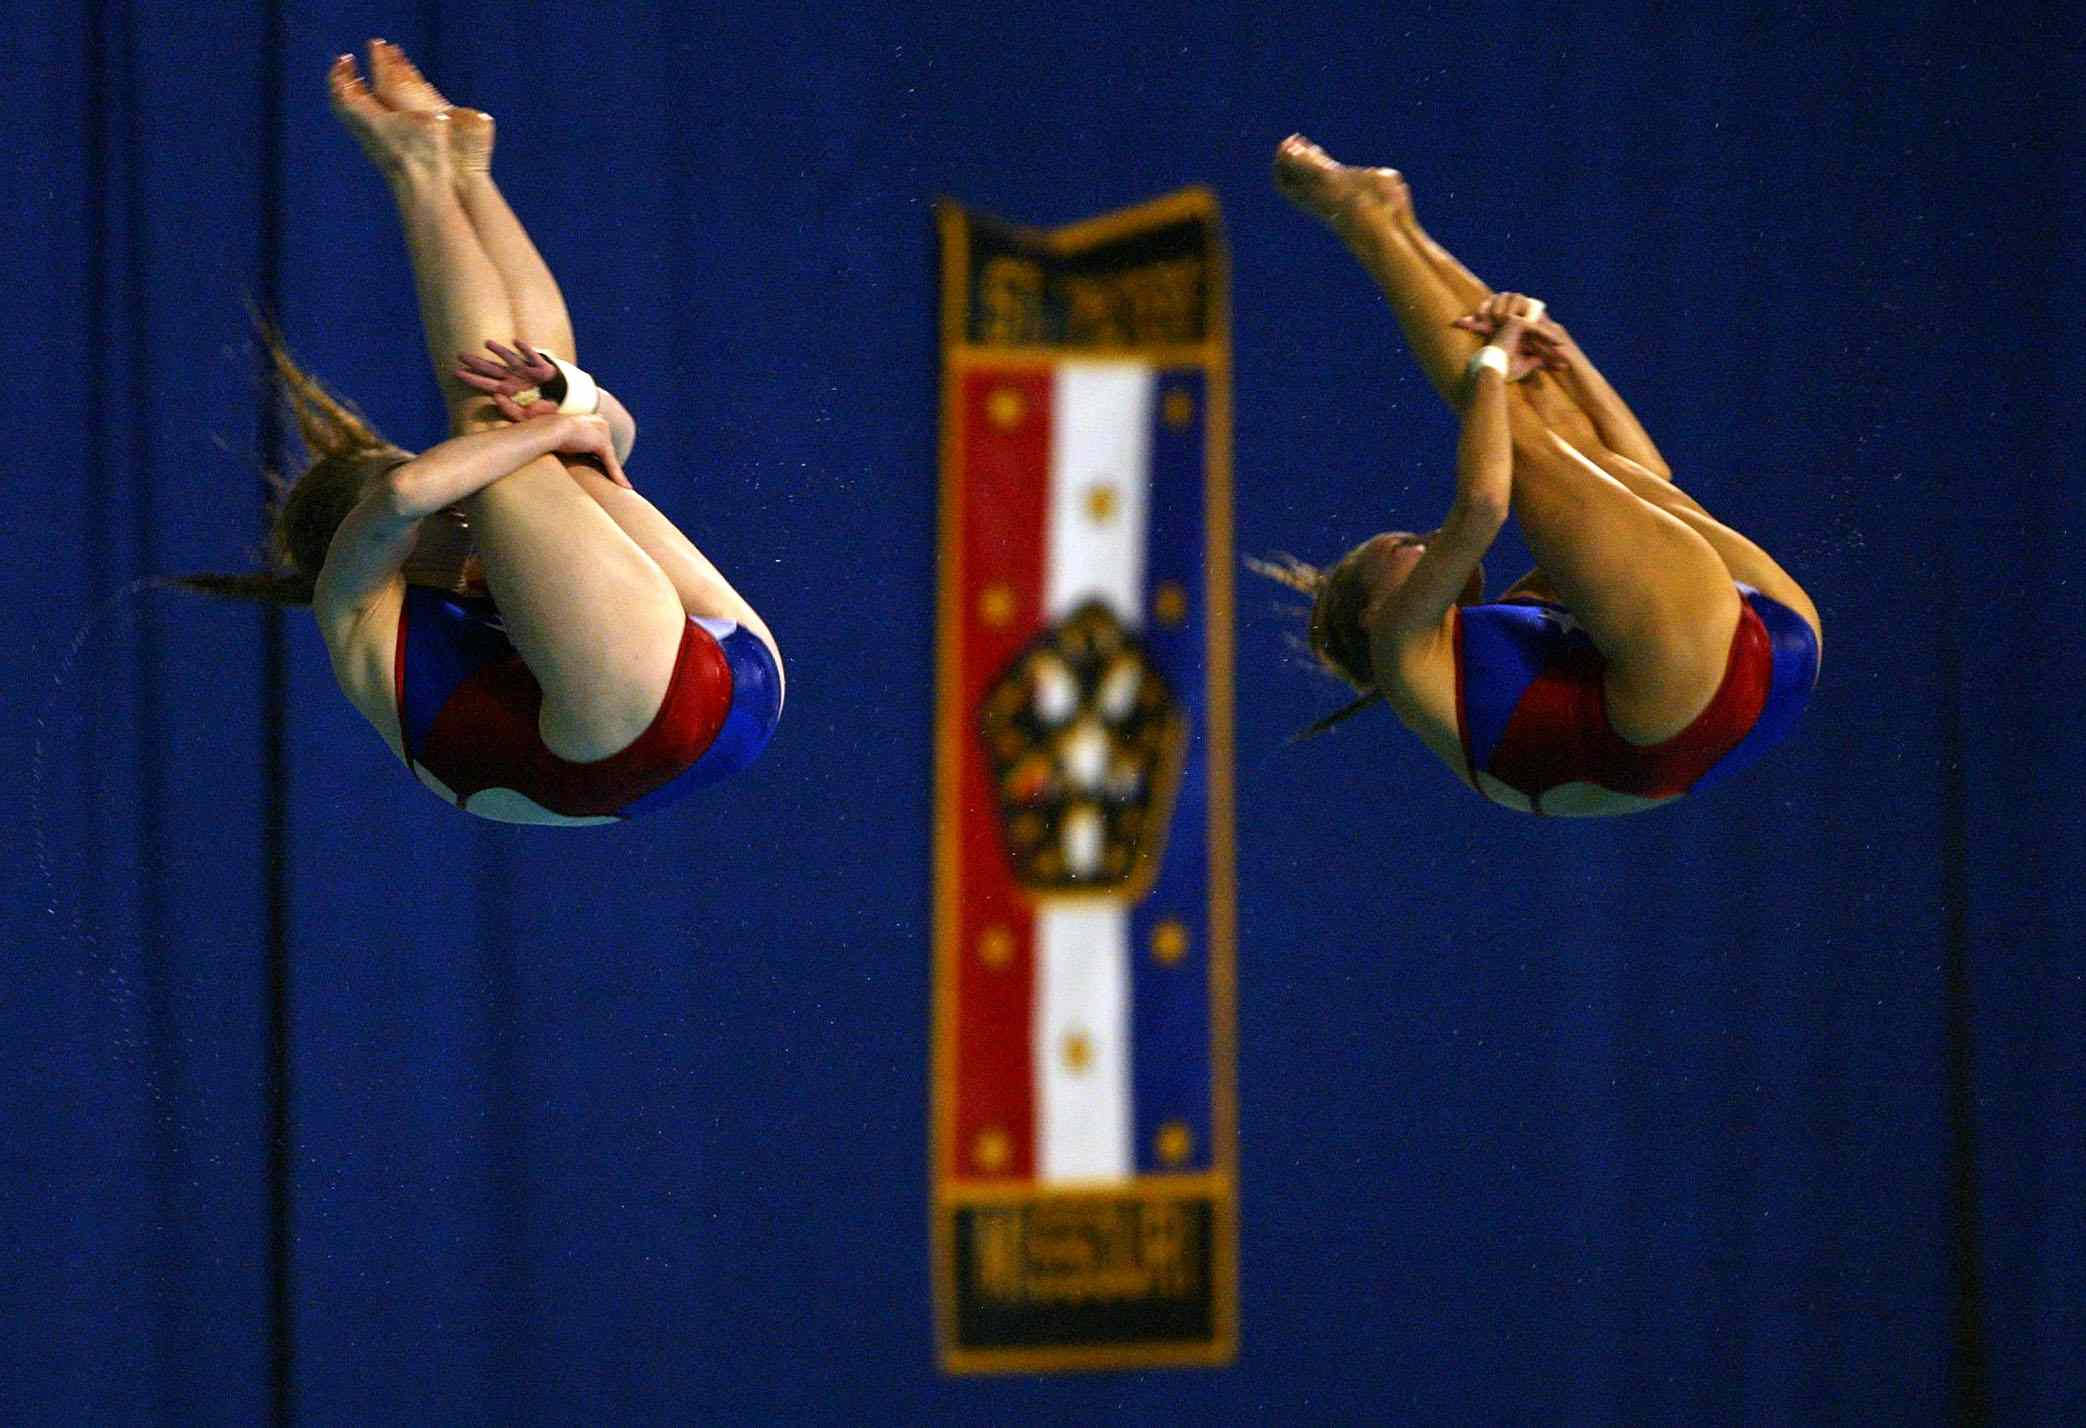 Synchronized divers performing somersaults.